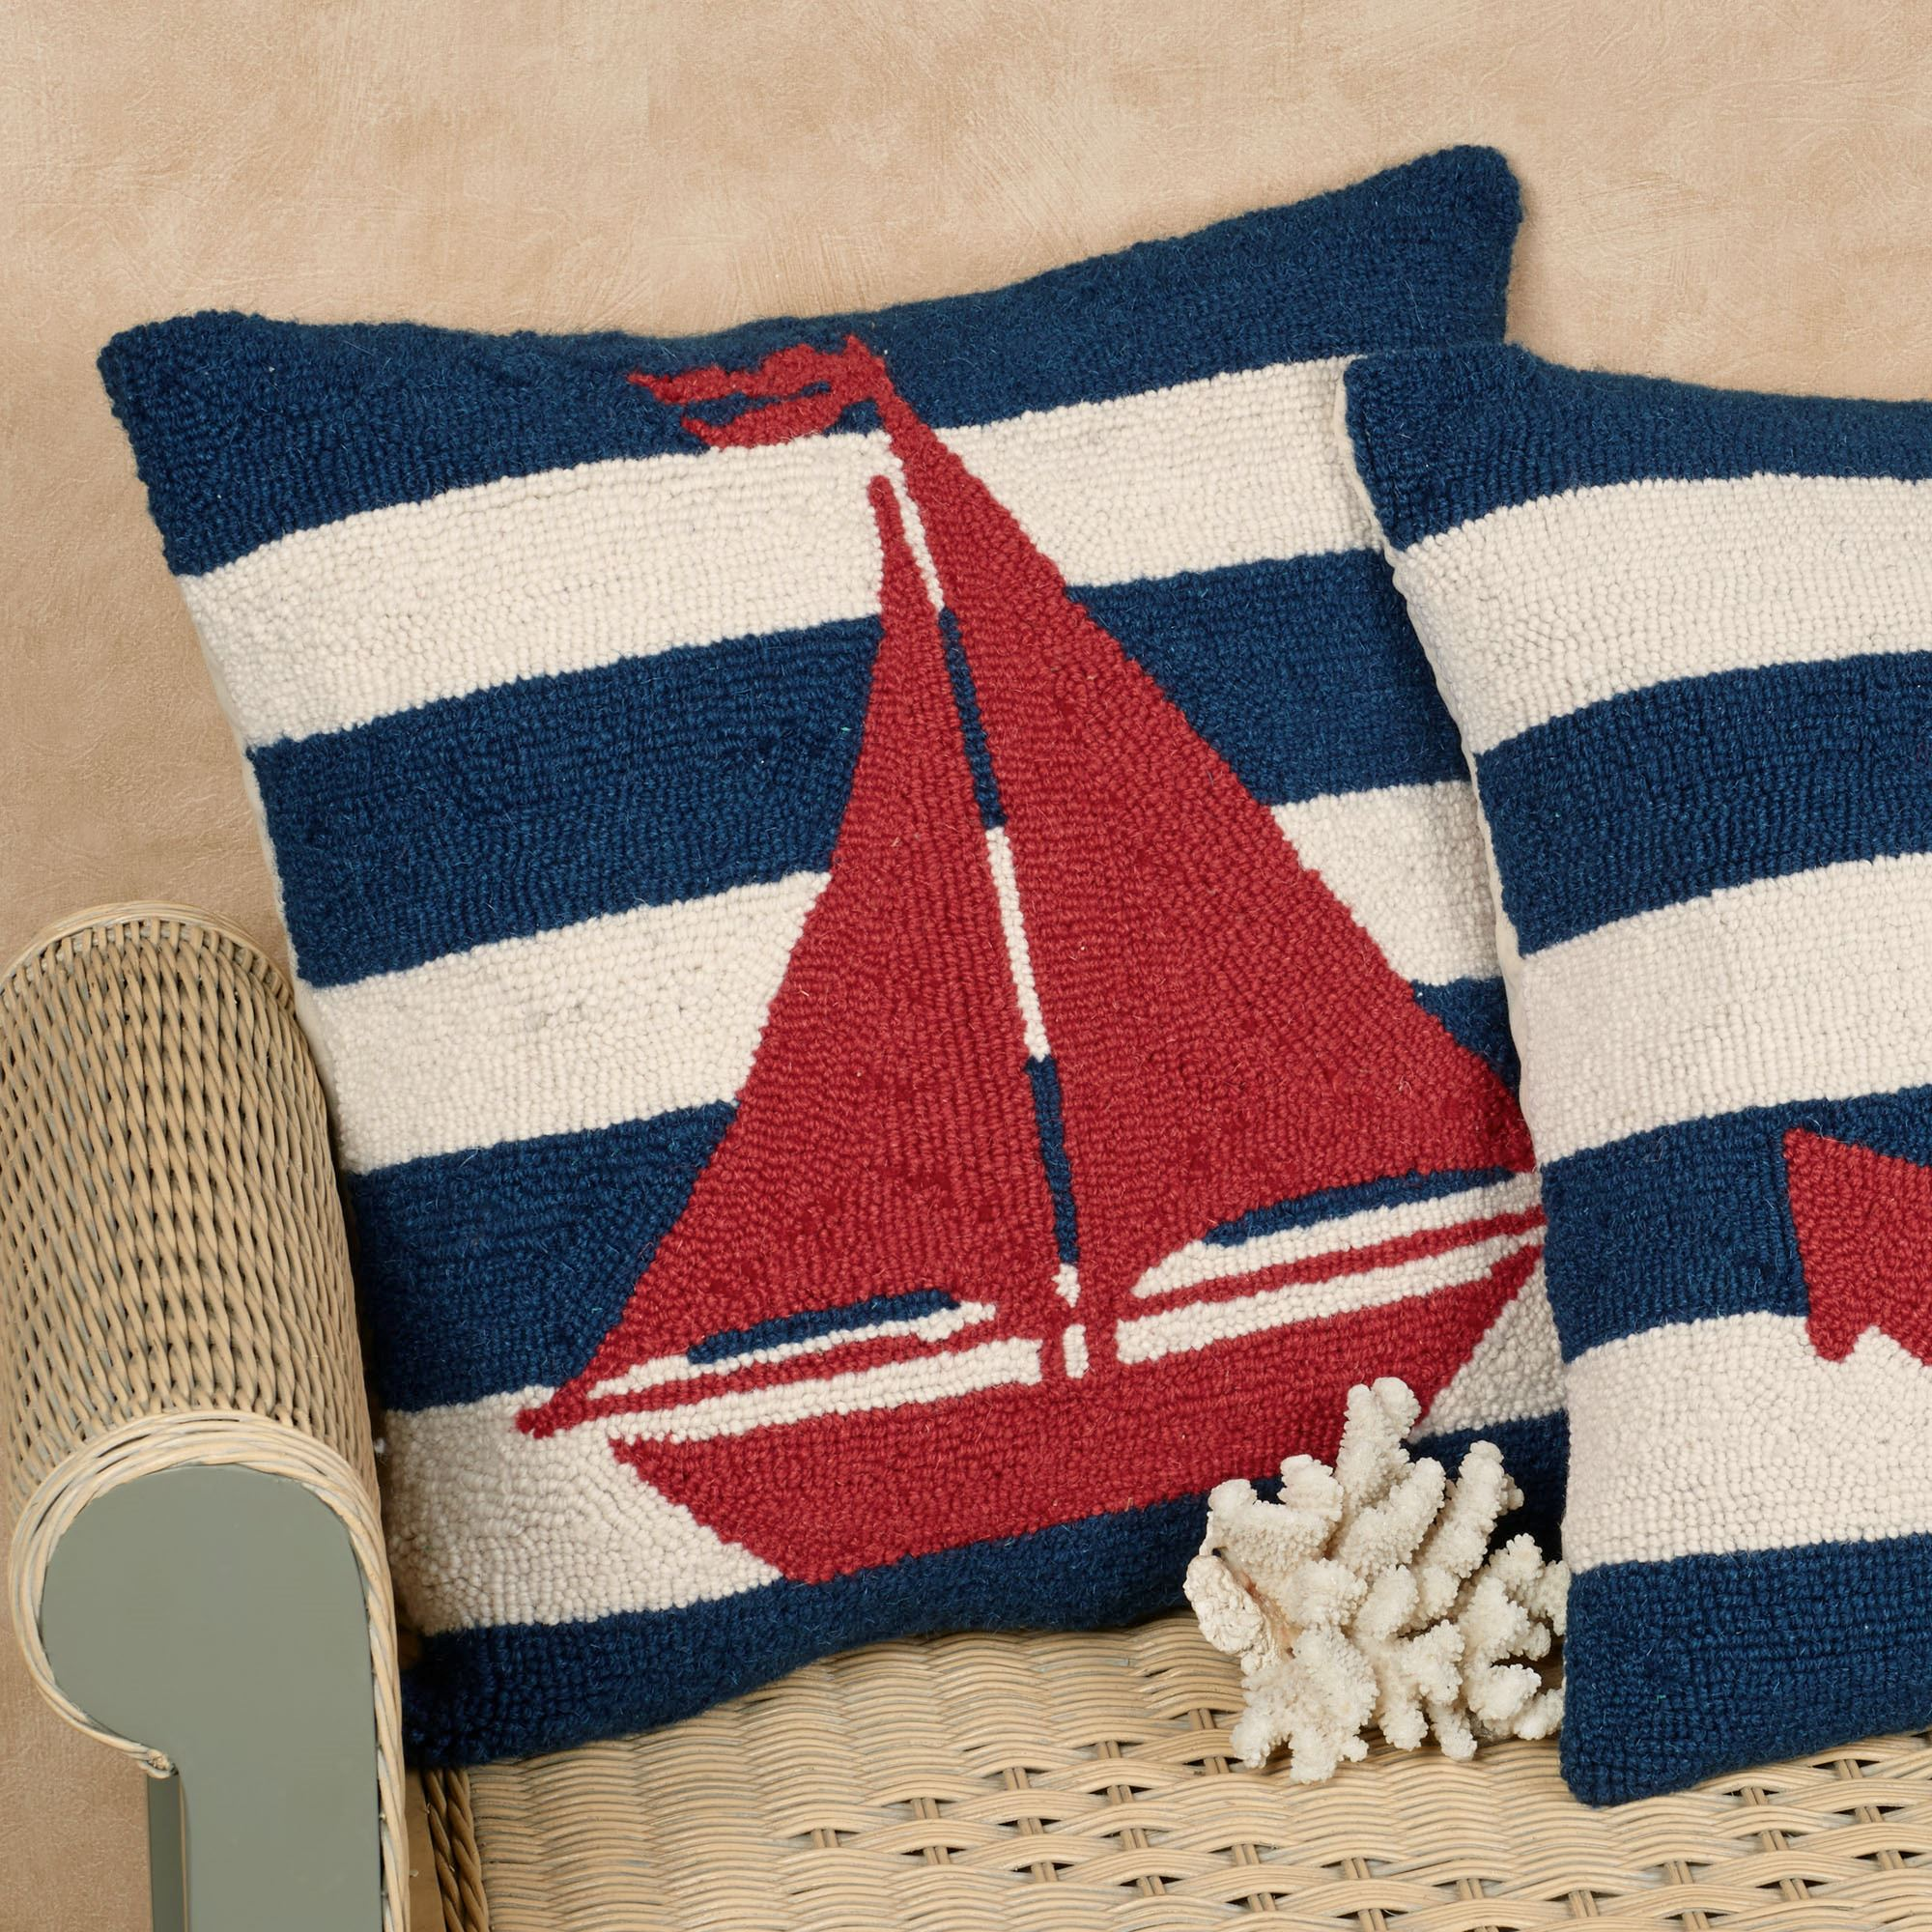 free product anchor pillow garden pillows inch throw shipping laural decorative nautical today overstock home